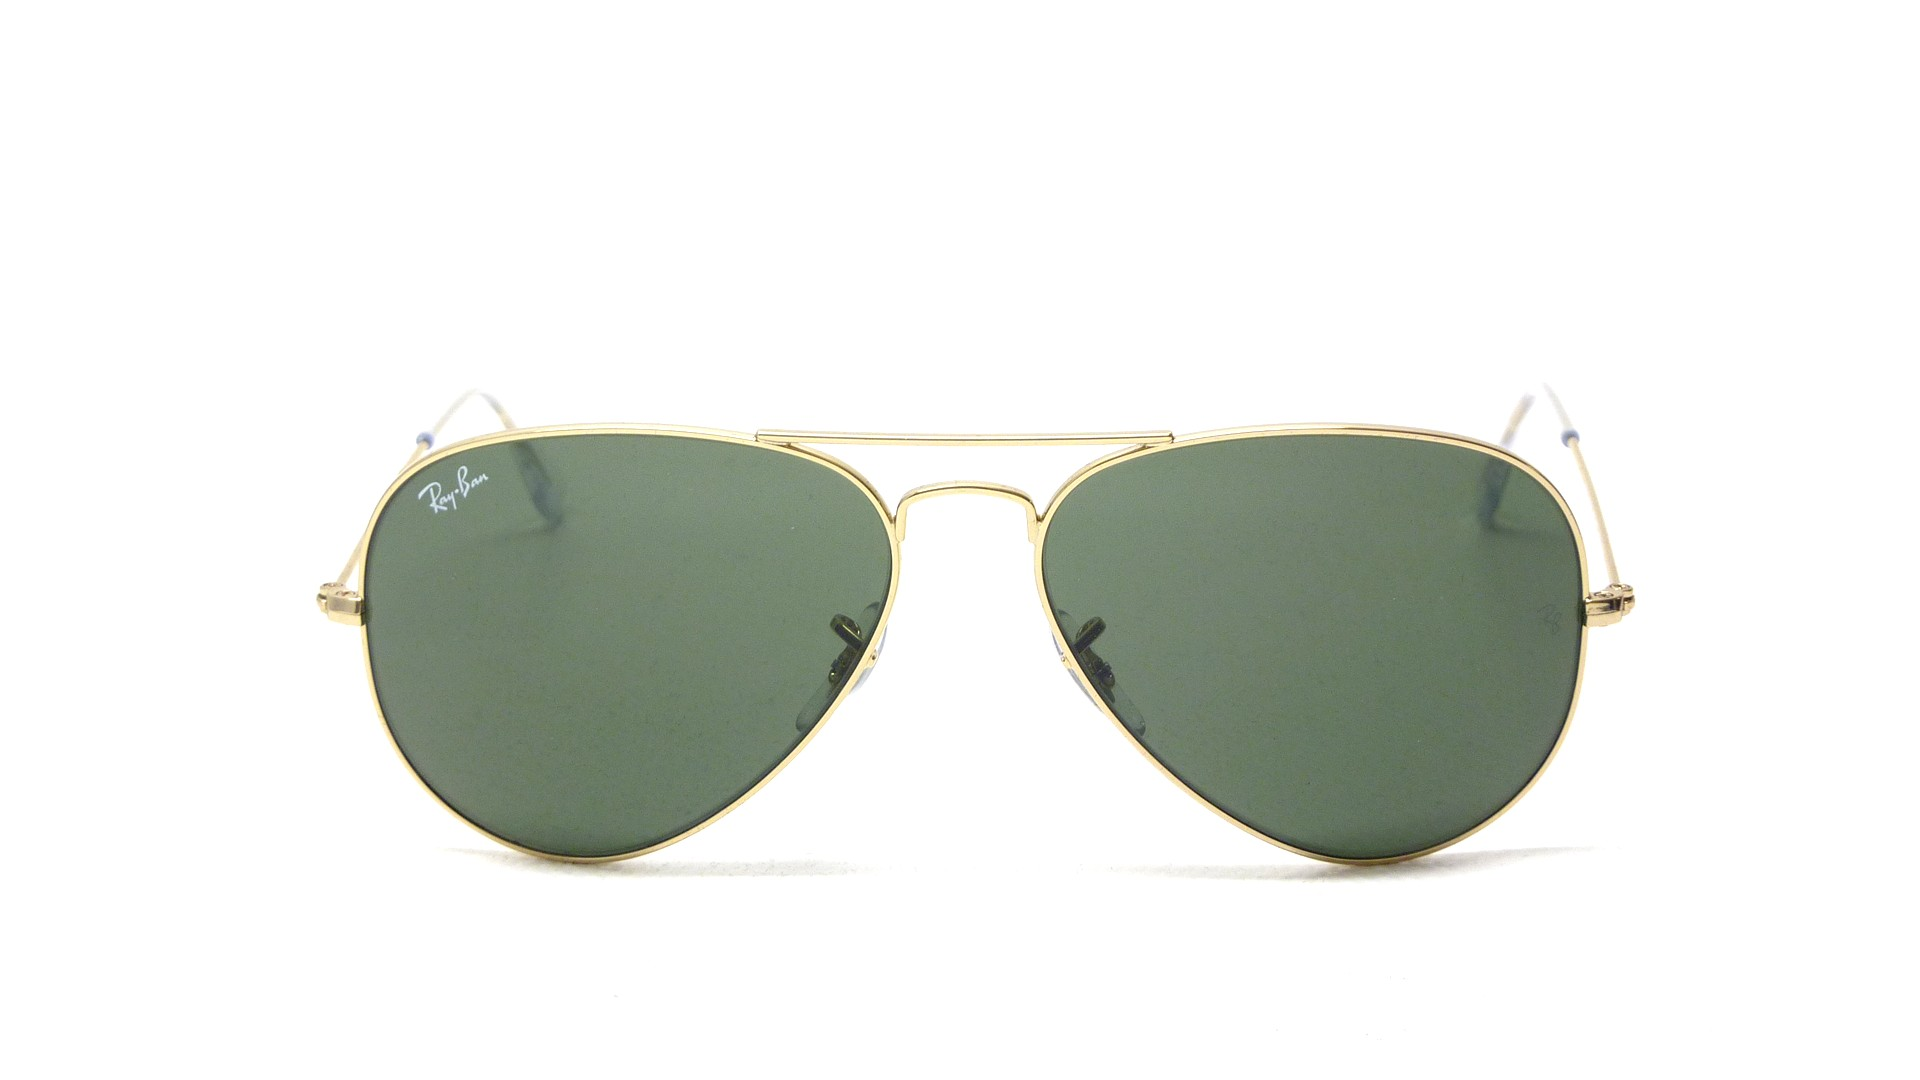 8227bc7a25c Ray Ban Rb3026 Aviator Metal Gold Sunglasses « Heritage Malta